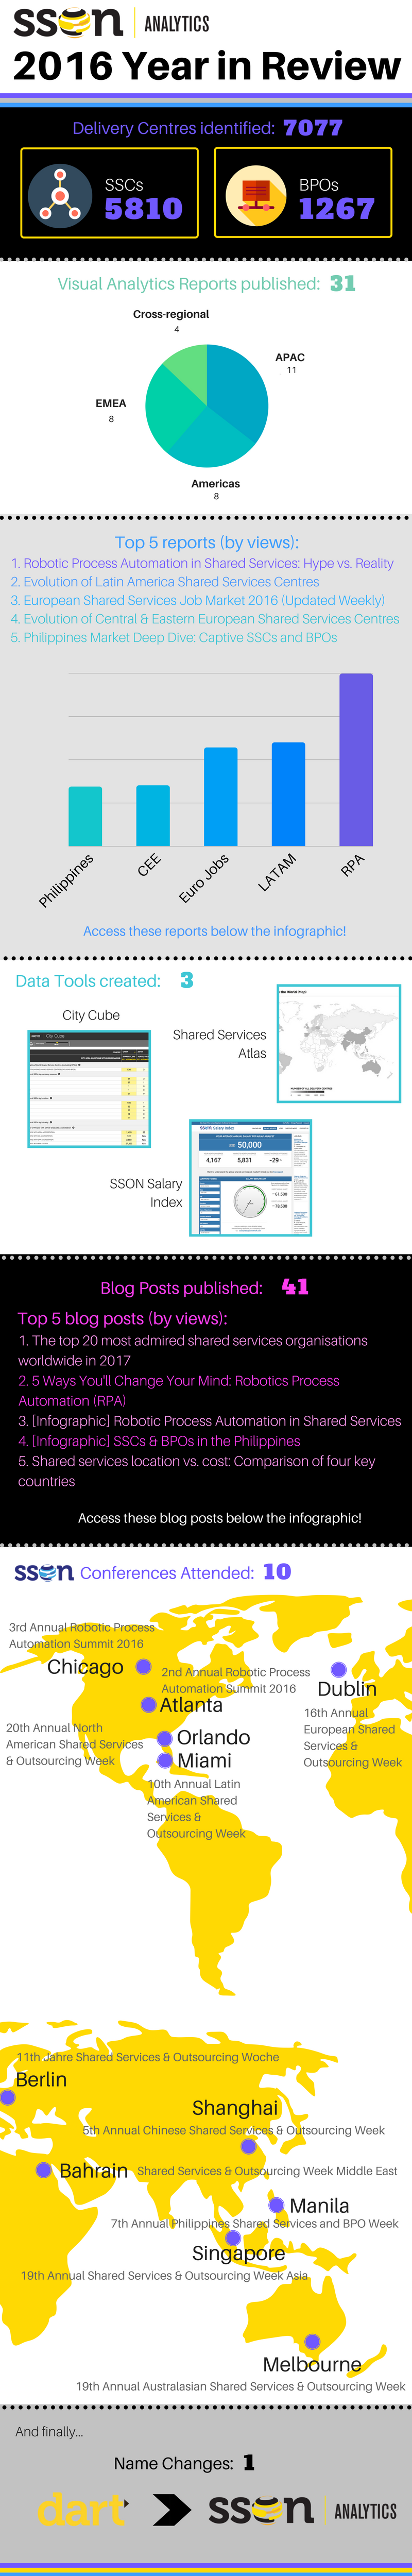 SSON Analytics 2016 Year In Review